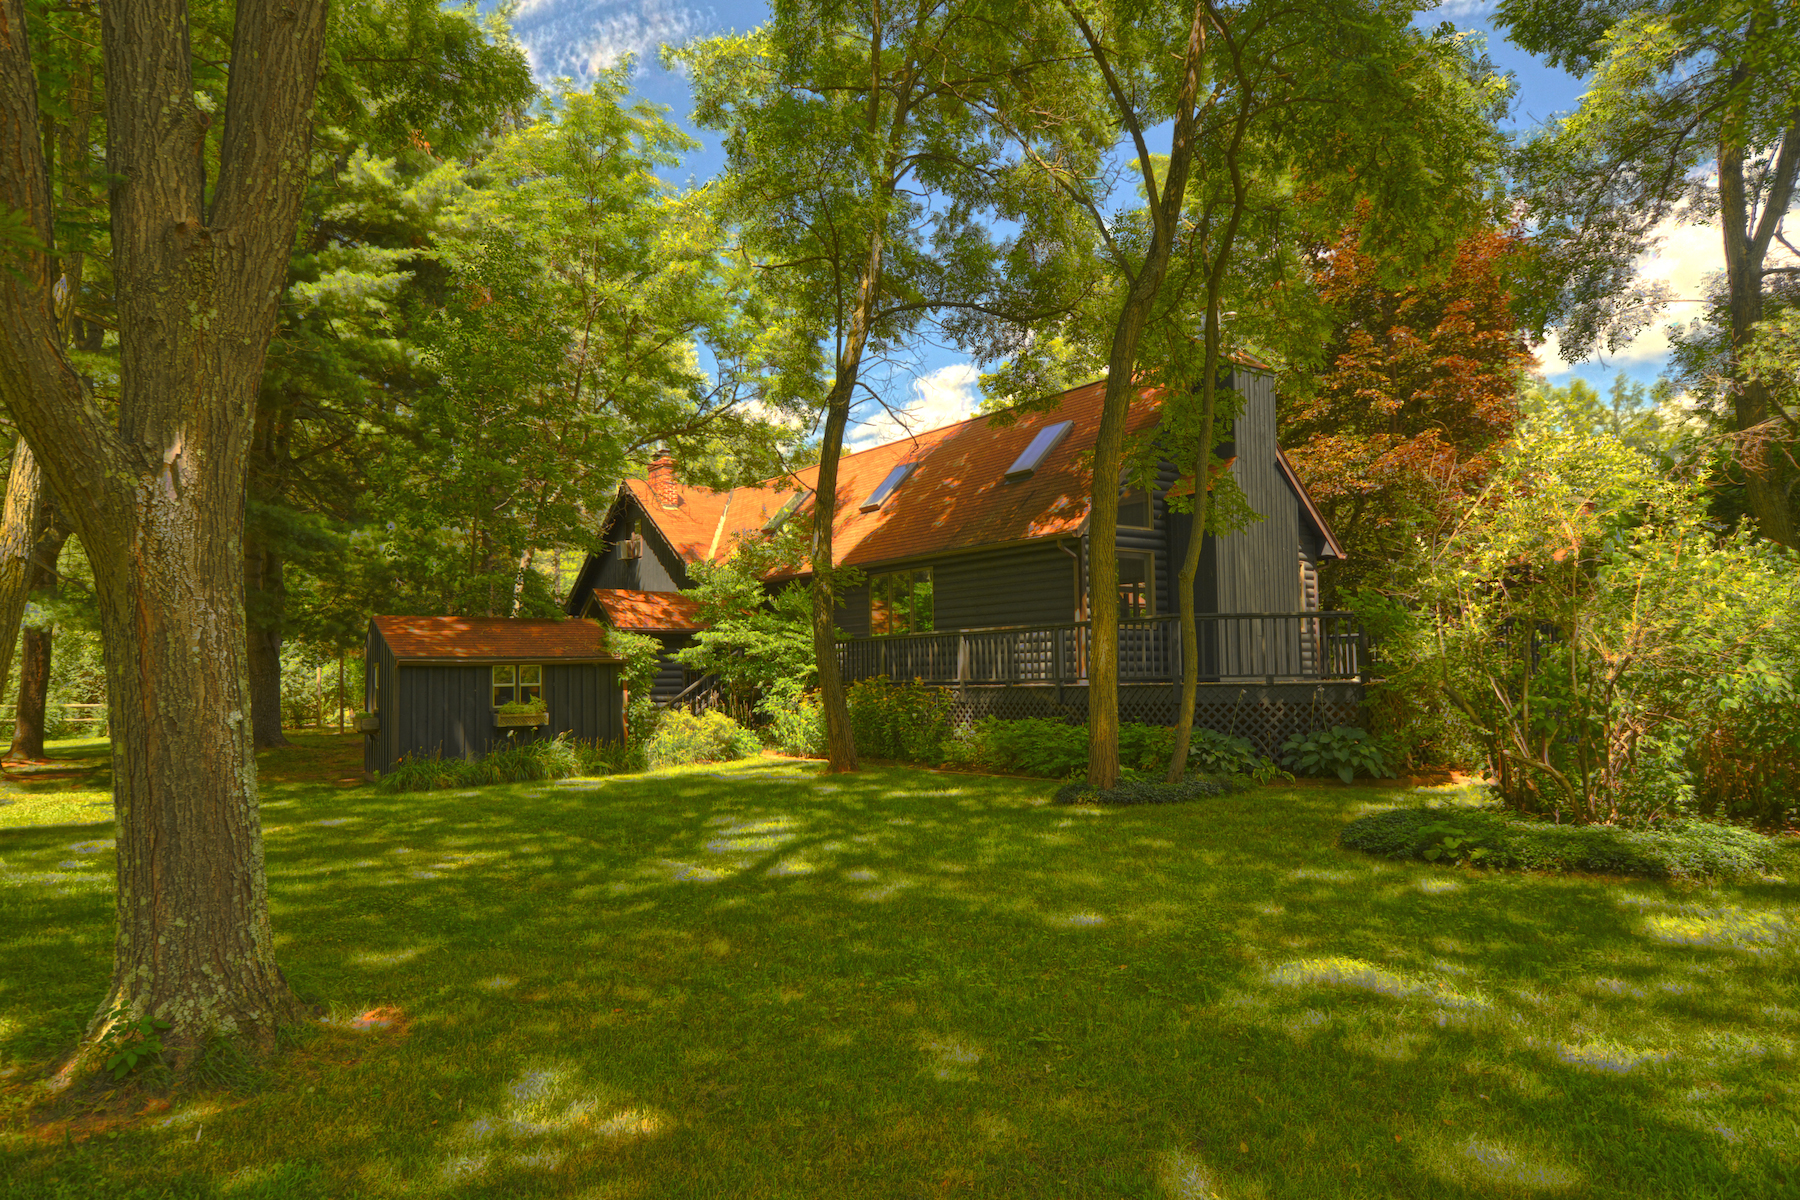 Single Family Home for Sale at Awe-Inspiring Mountain Estate 113 Van Rd Lexington, New York 12452 United States